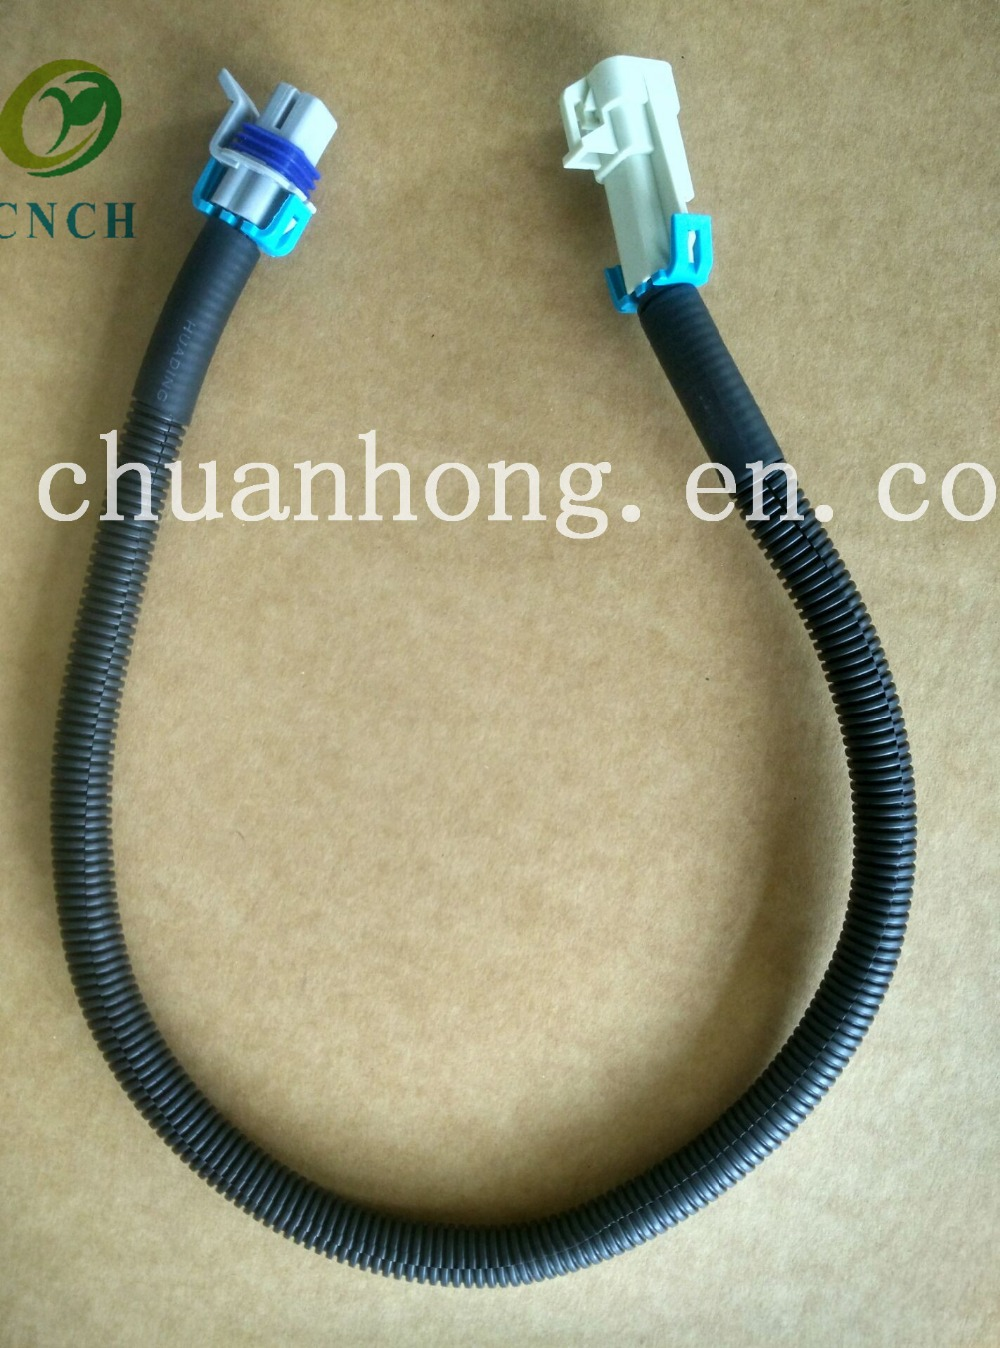 hight resolution of cnch 4 pin pigtail for gentex 313 453 homelink or hl compass mirror wiring harness